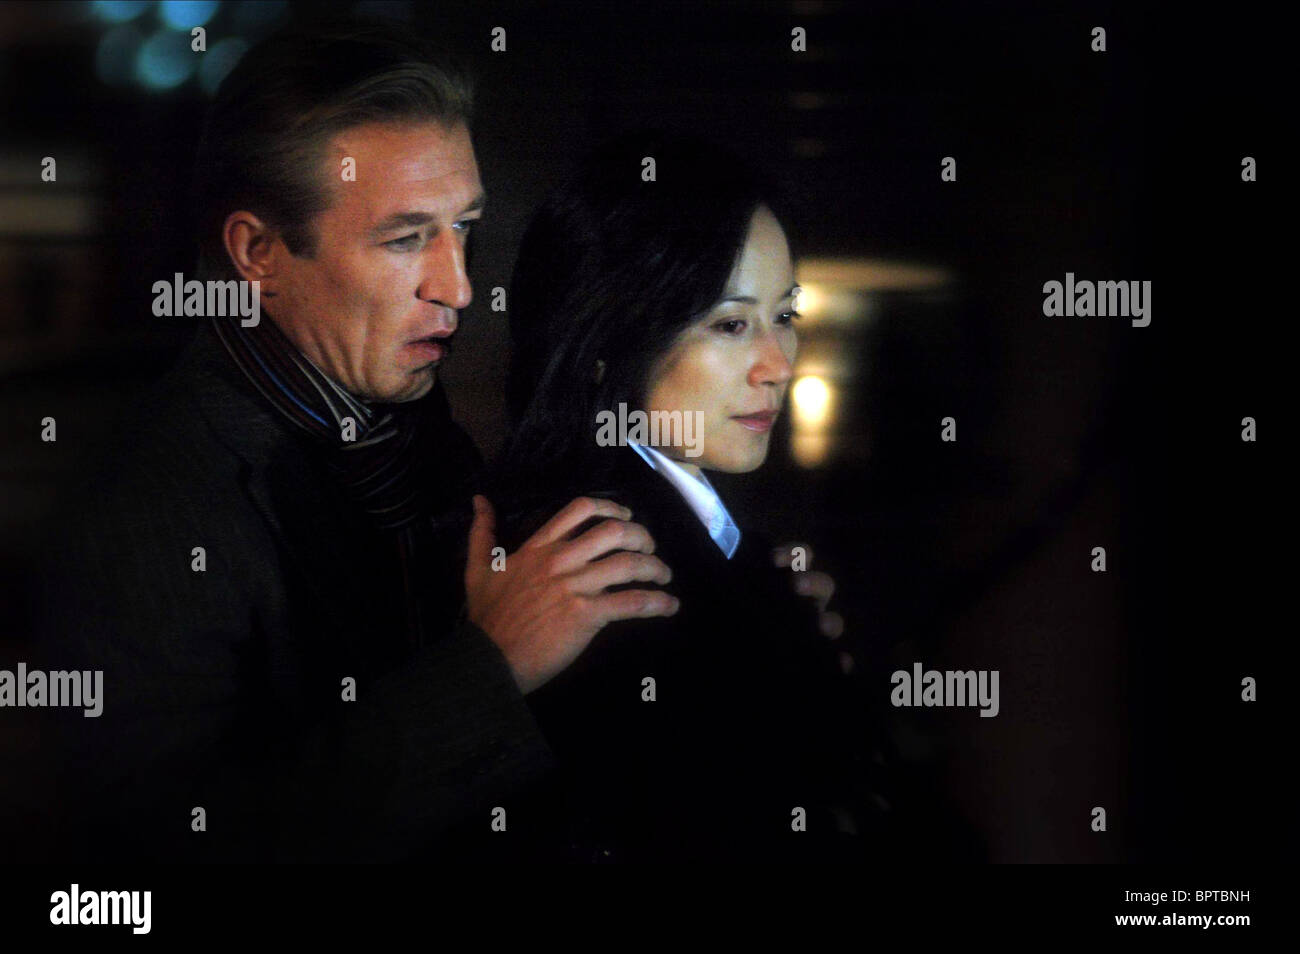 PAVEL LYCHNIKOFF & FEIHONG YU A THOUSAND YEARS OF GOOD PRAYERS (2007) - Stock Image